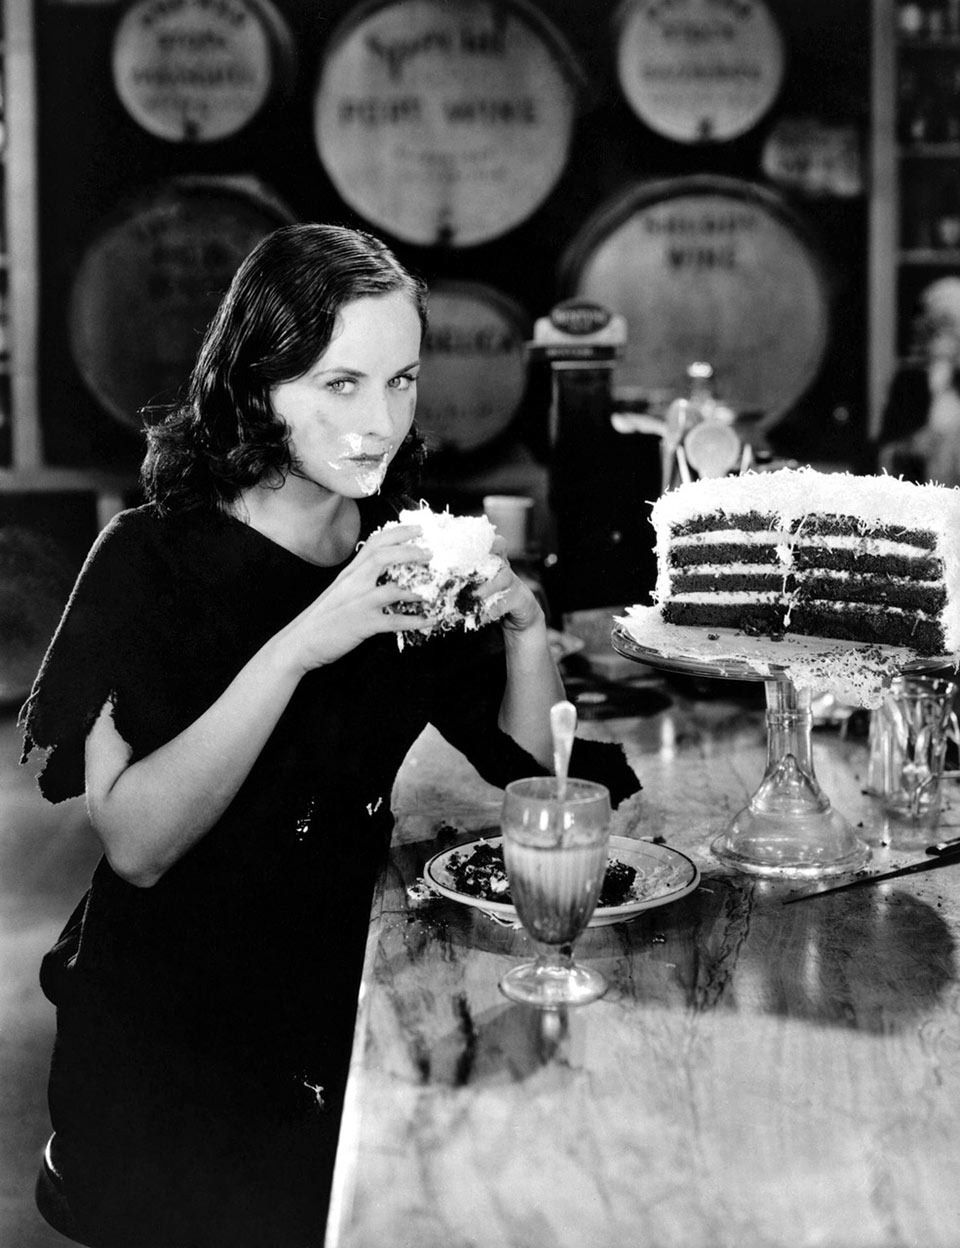 The Beautiful Paulette Goddard 1910 1990 In Modern Times The 1936 Film Directed By Charlie Chaplin